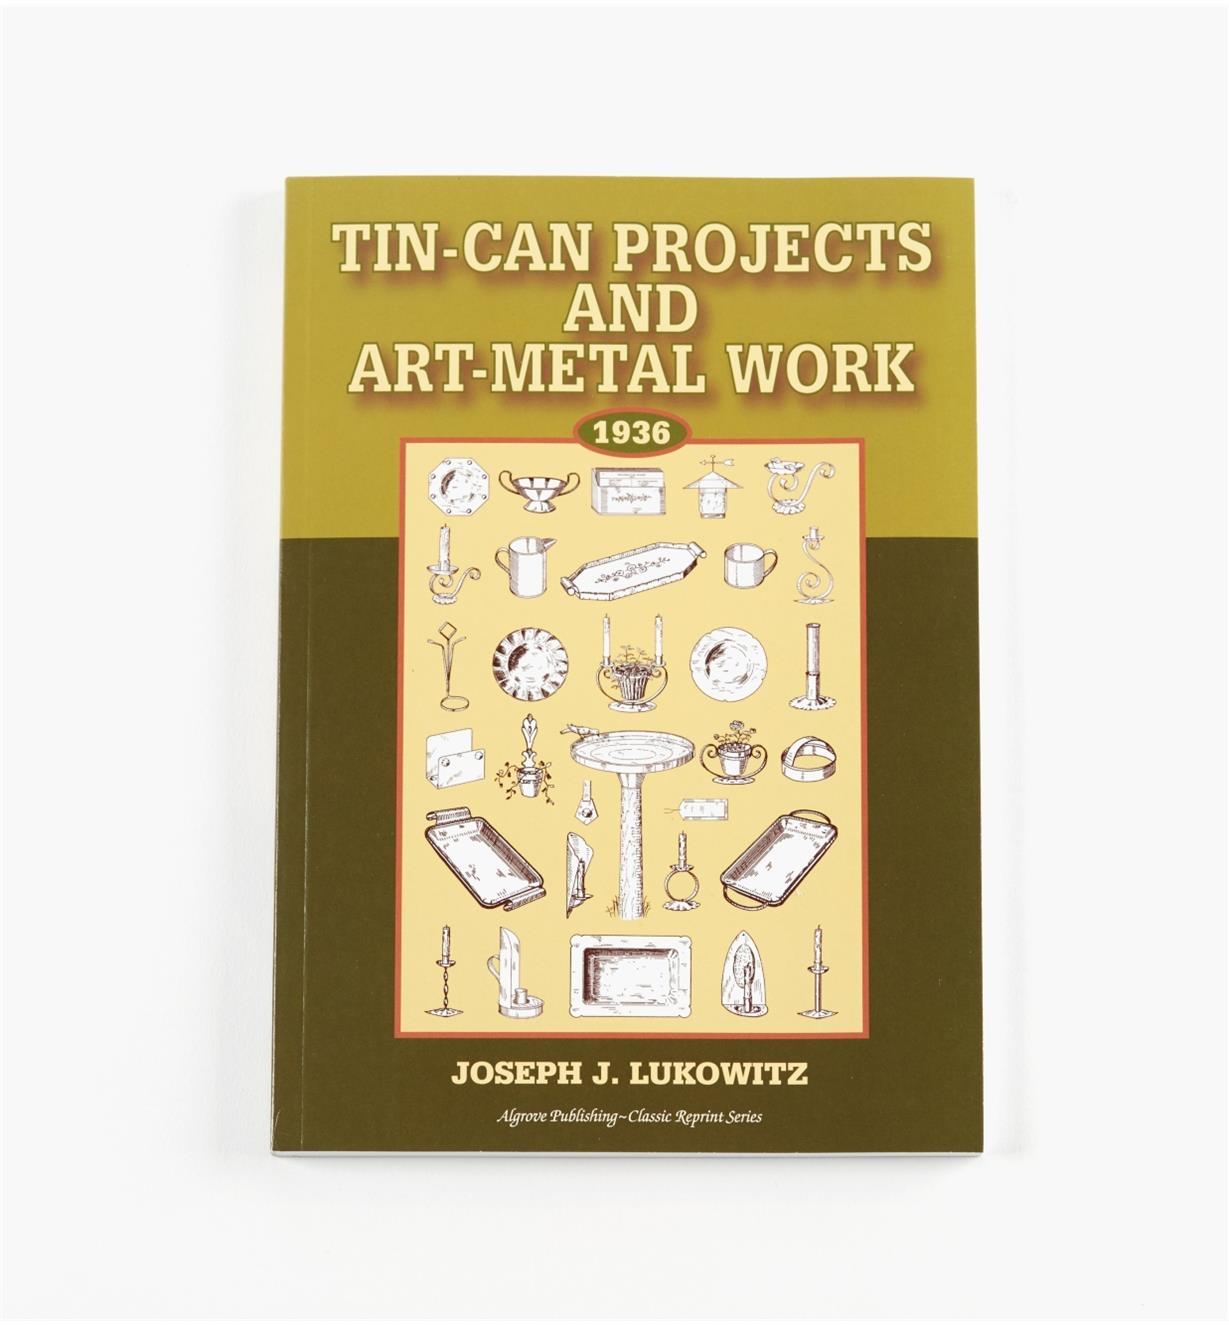 49L8131 - Tin-Can Projects and Art-Metal Work